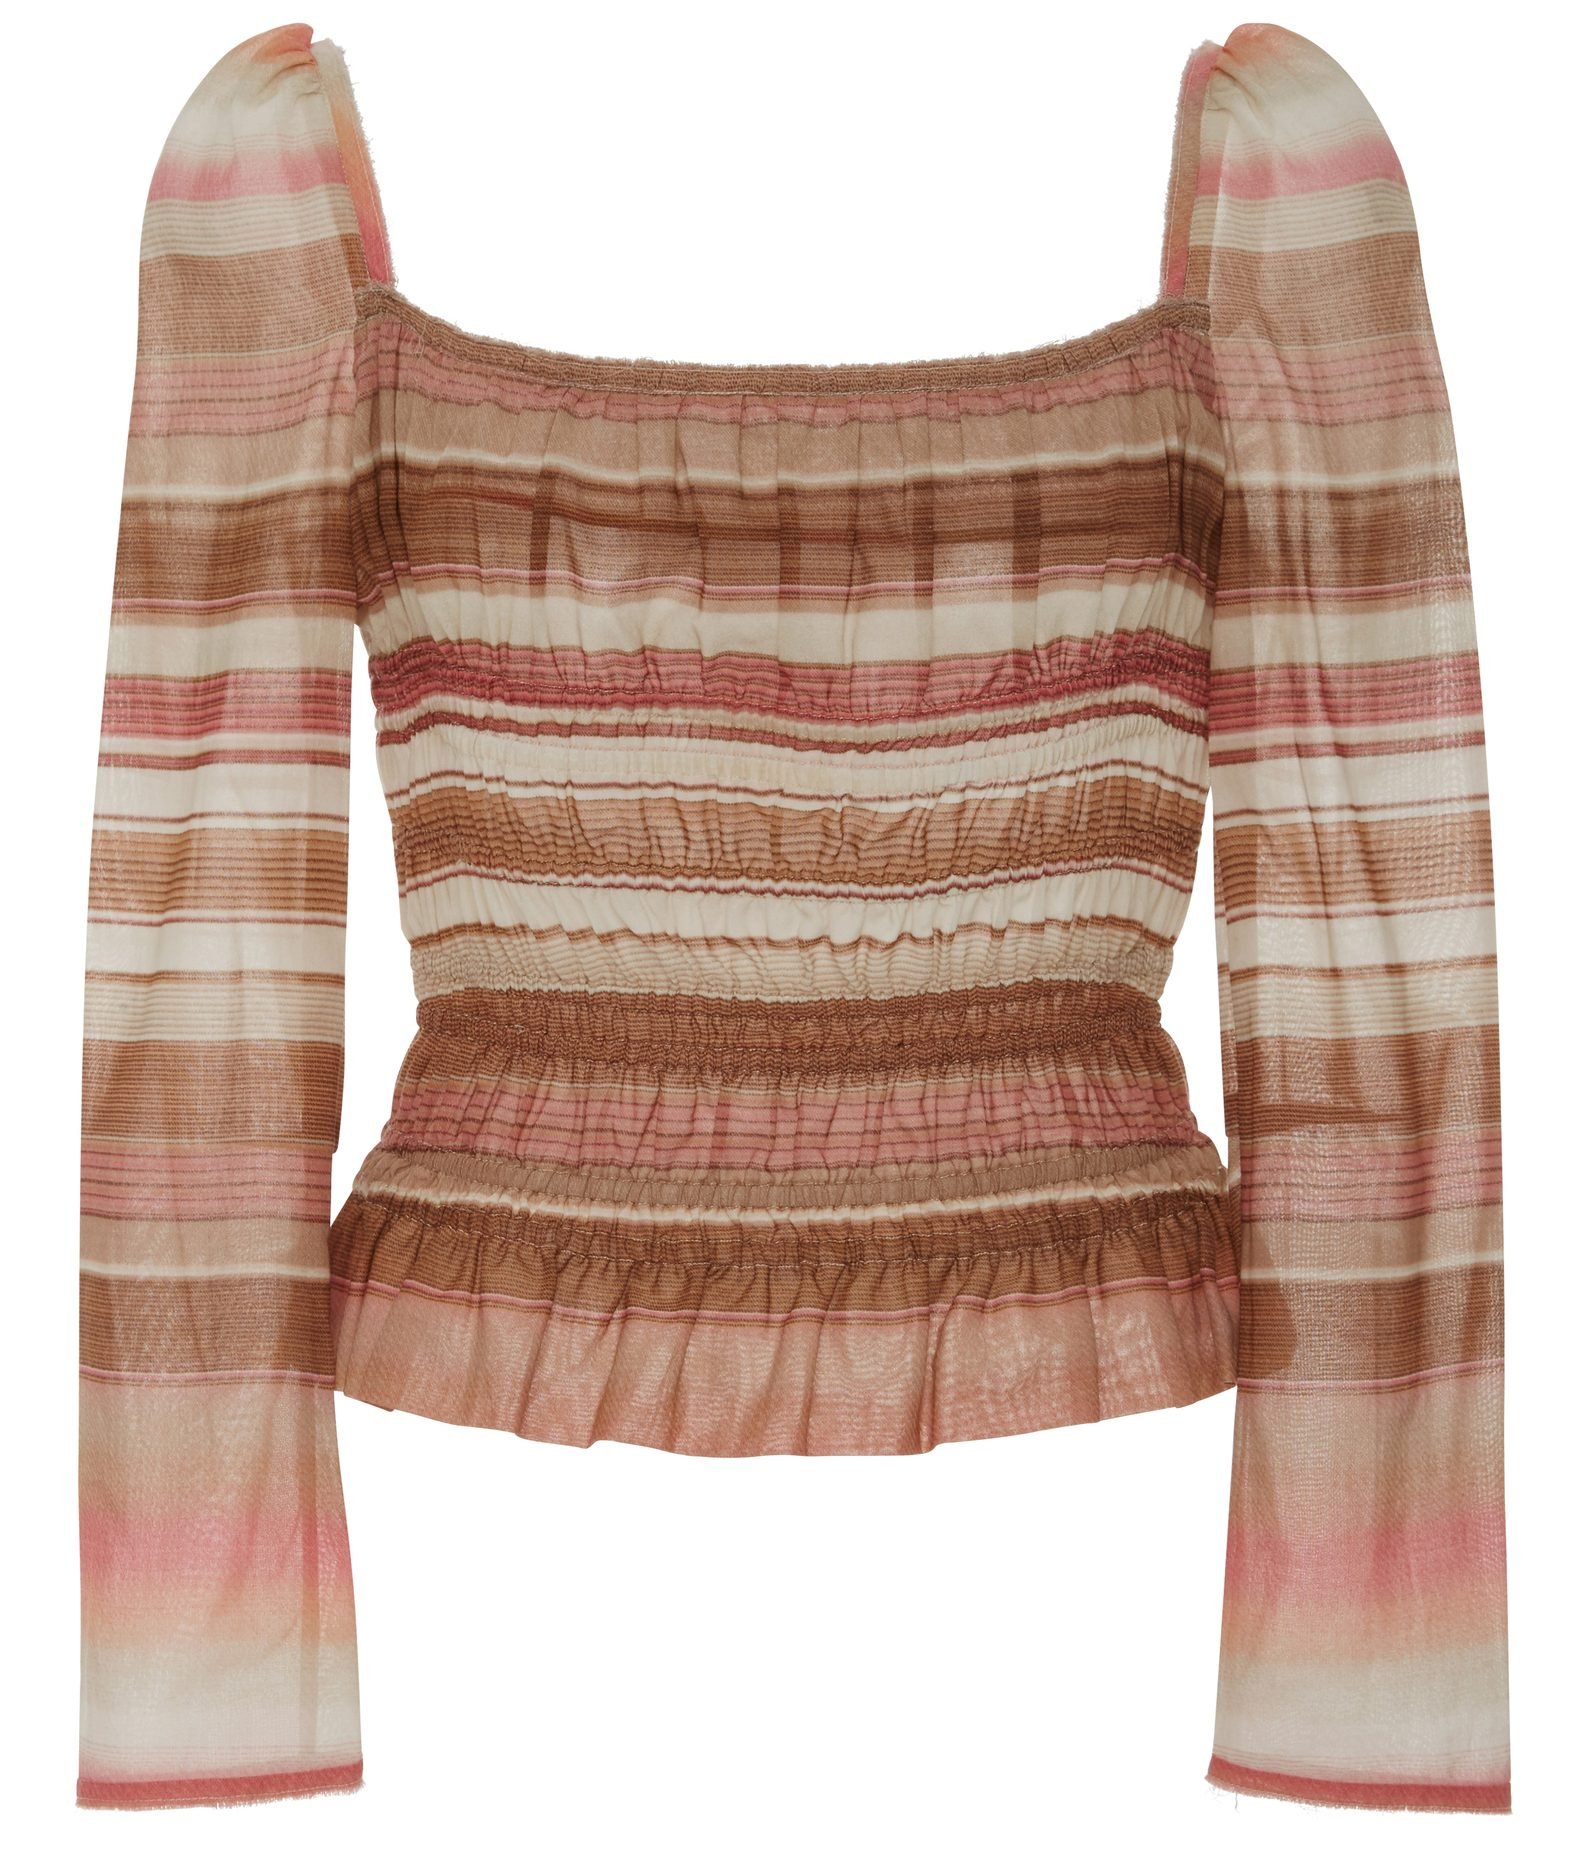 Brock collection brown stripe puffed shoulders subtle peplum hem voile elasticized Taylor top